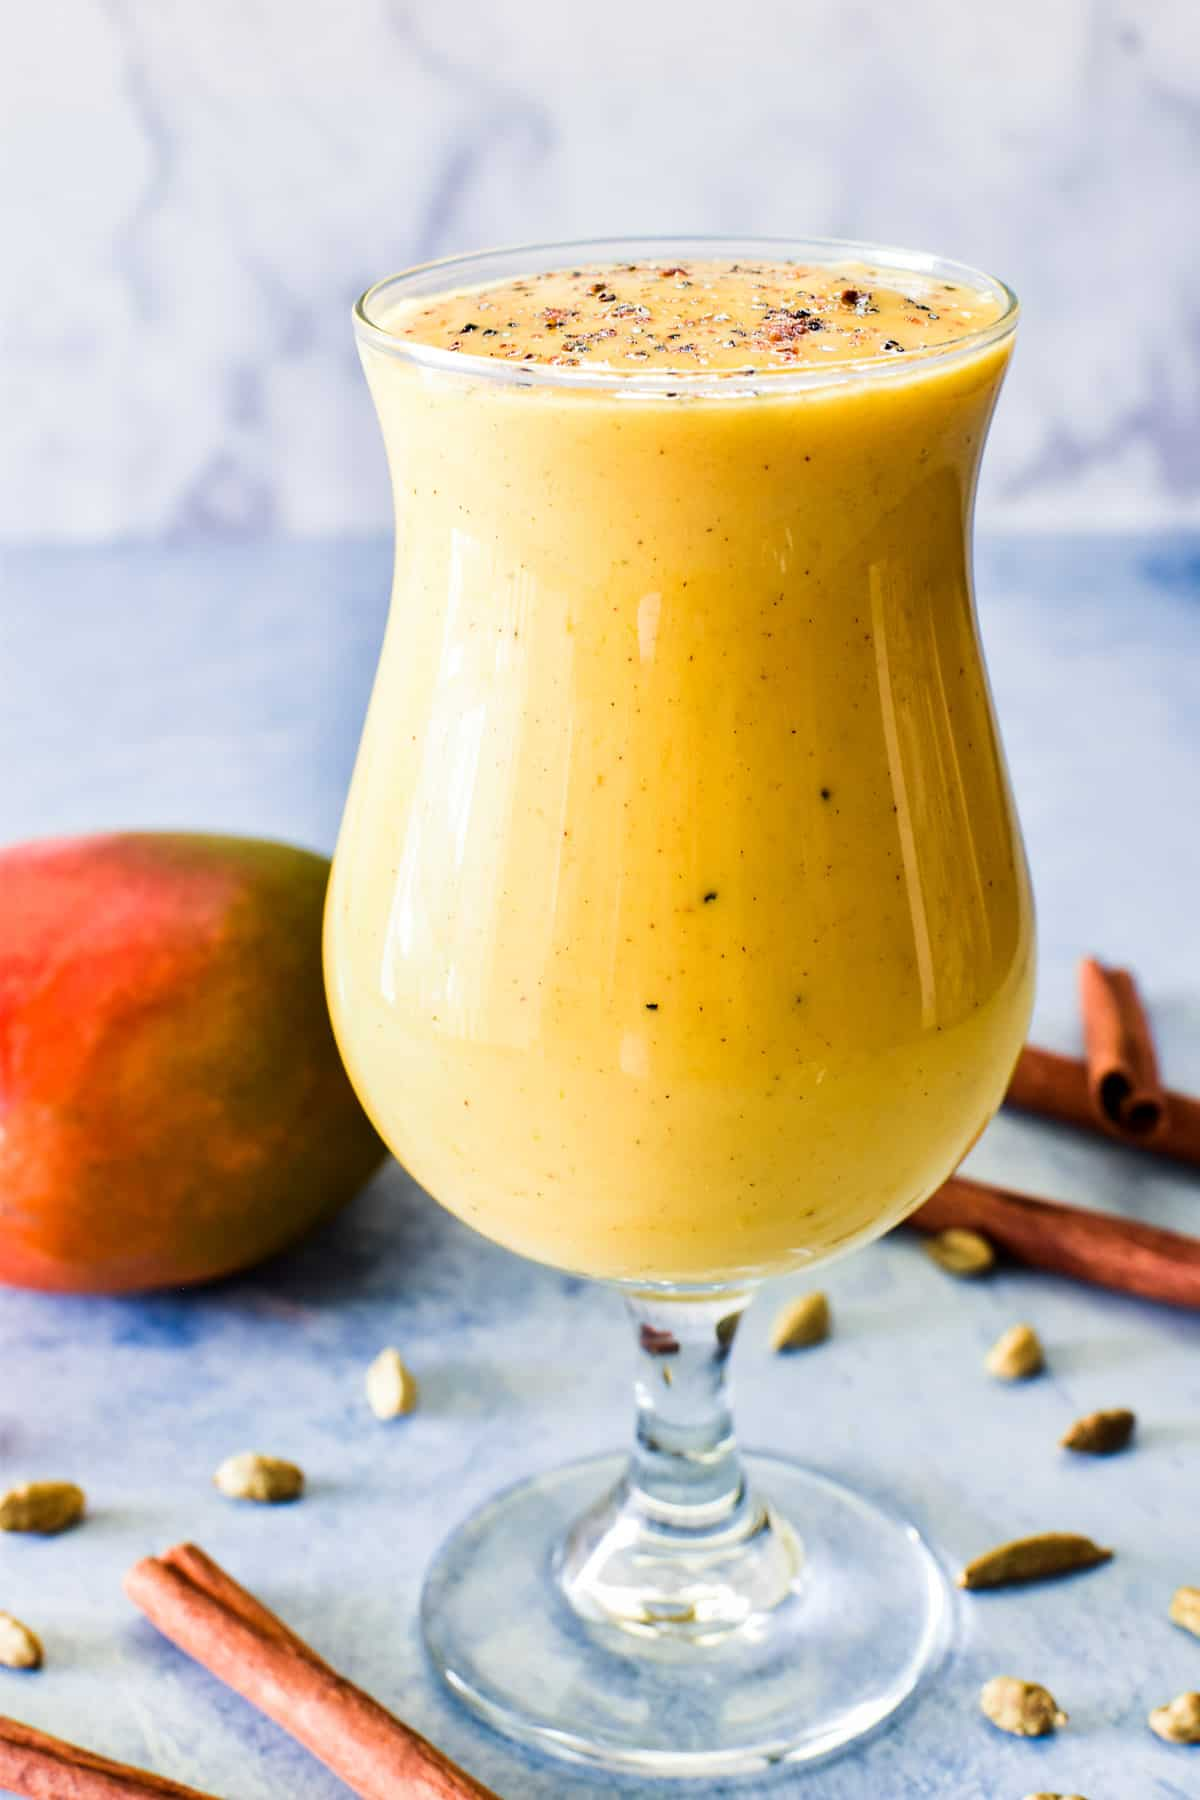 Mango Lassi in a glass with cardamom pods and cinnamon sticks